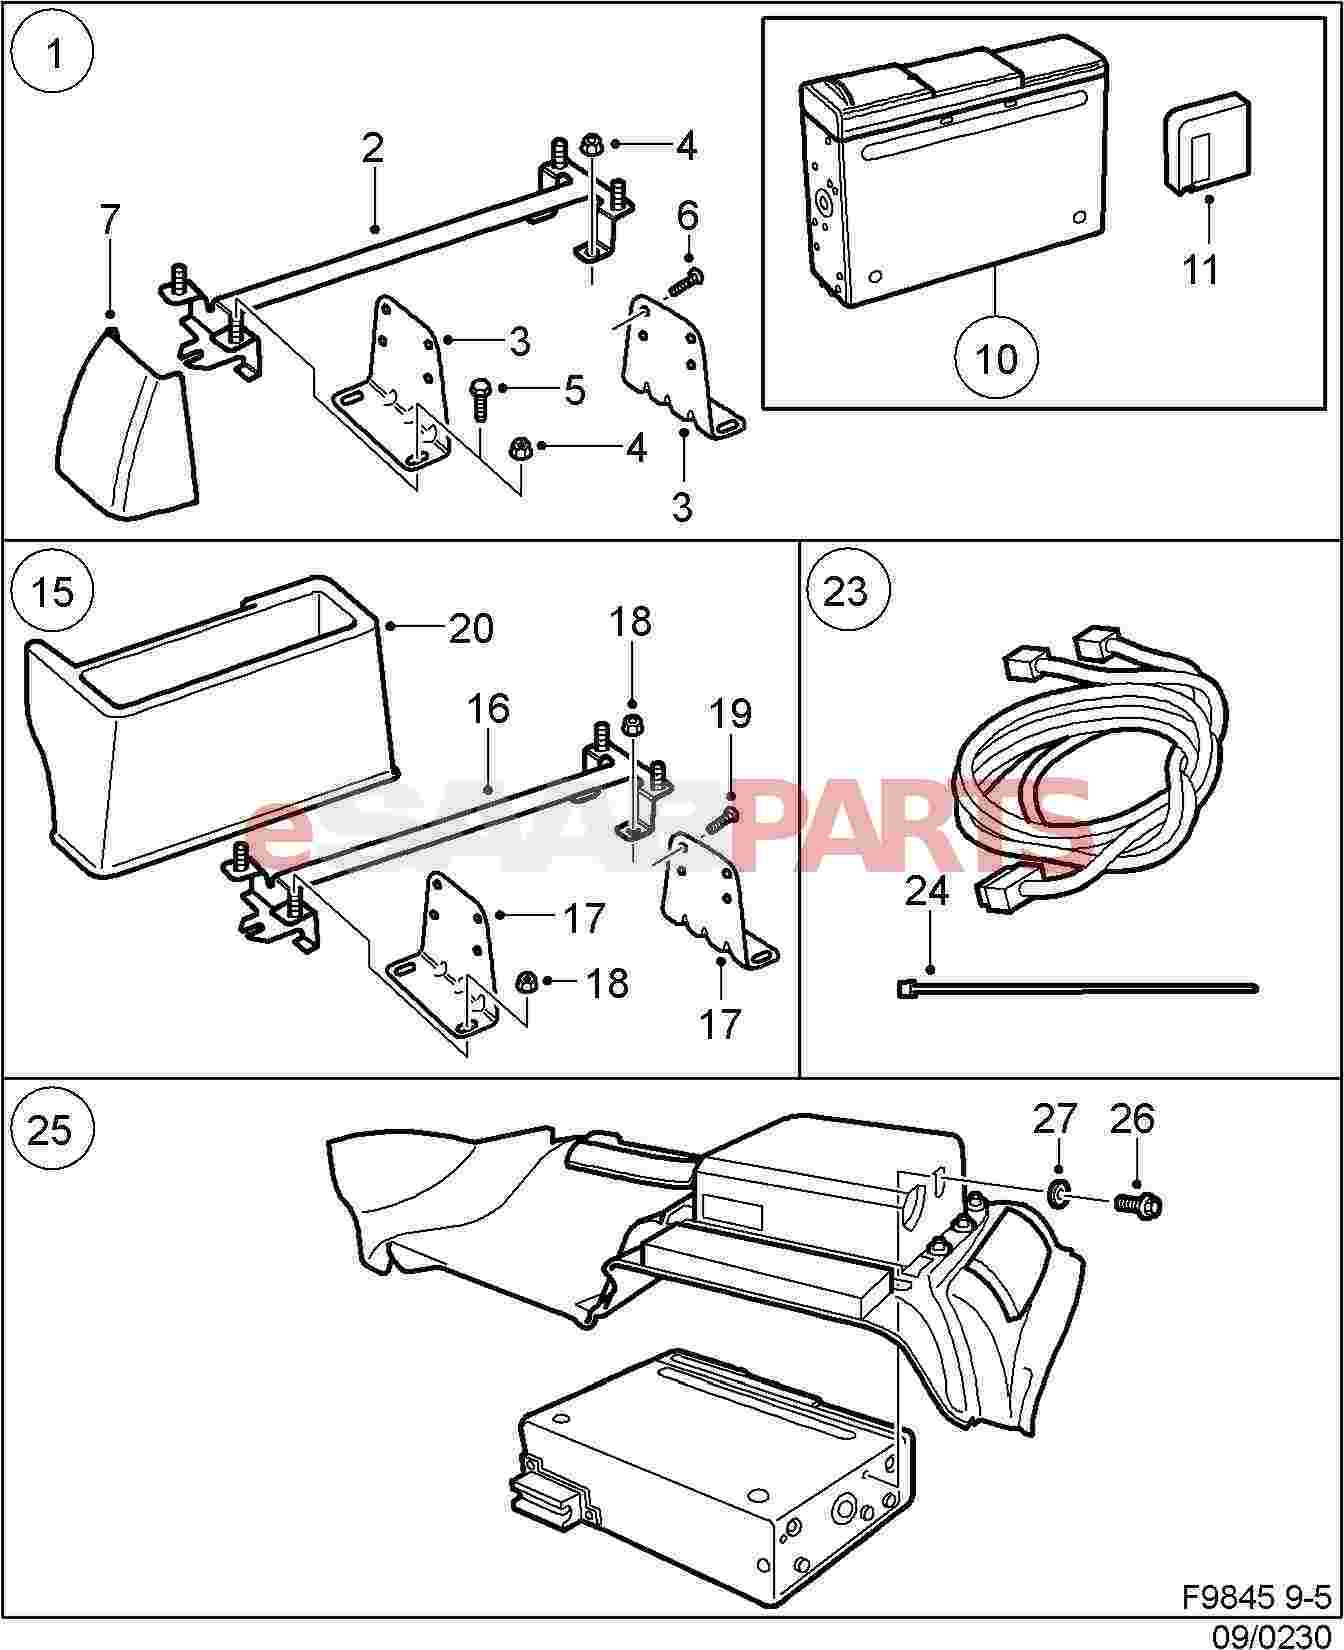 400129243  Saab Connection Cable  Cd-changer